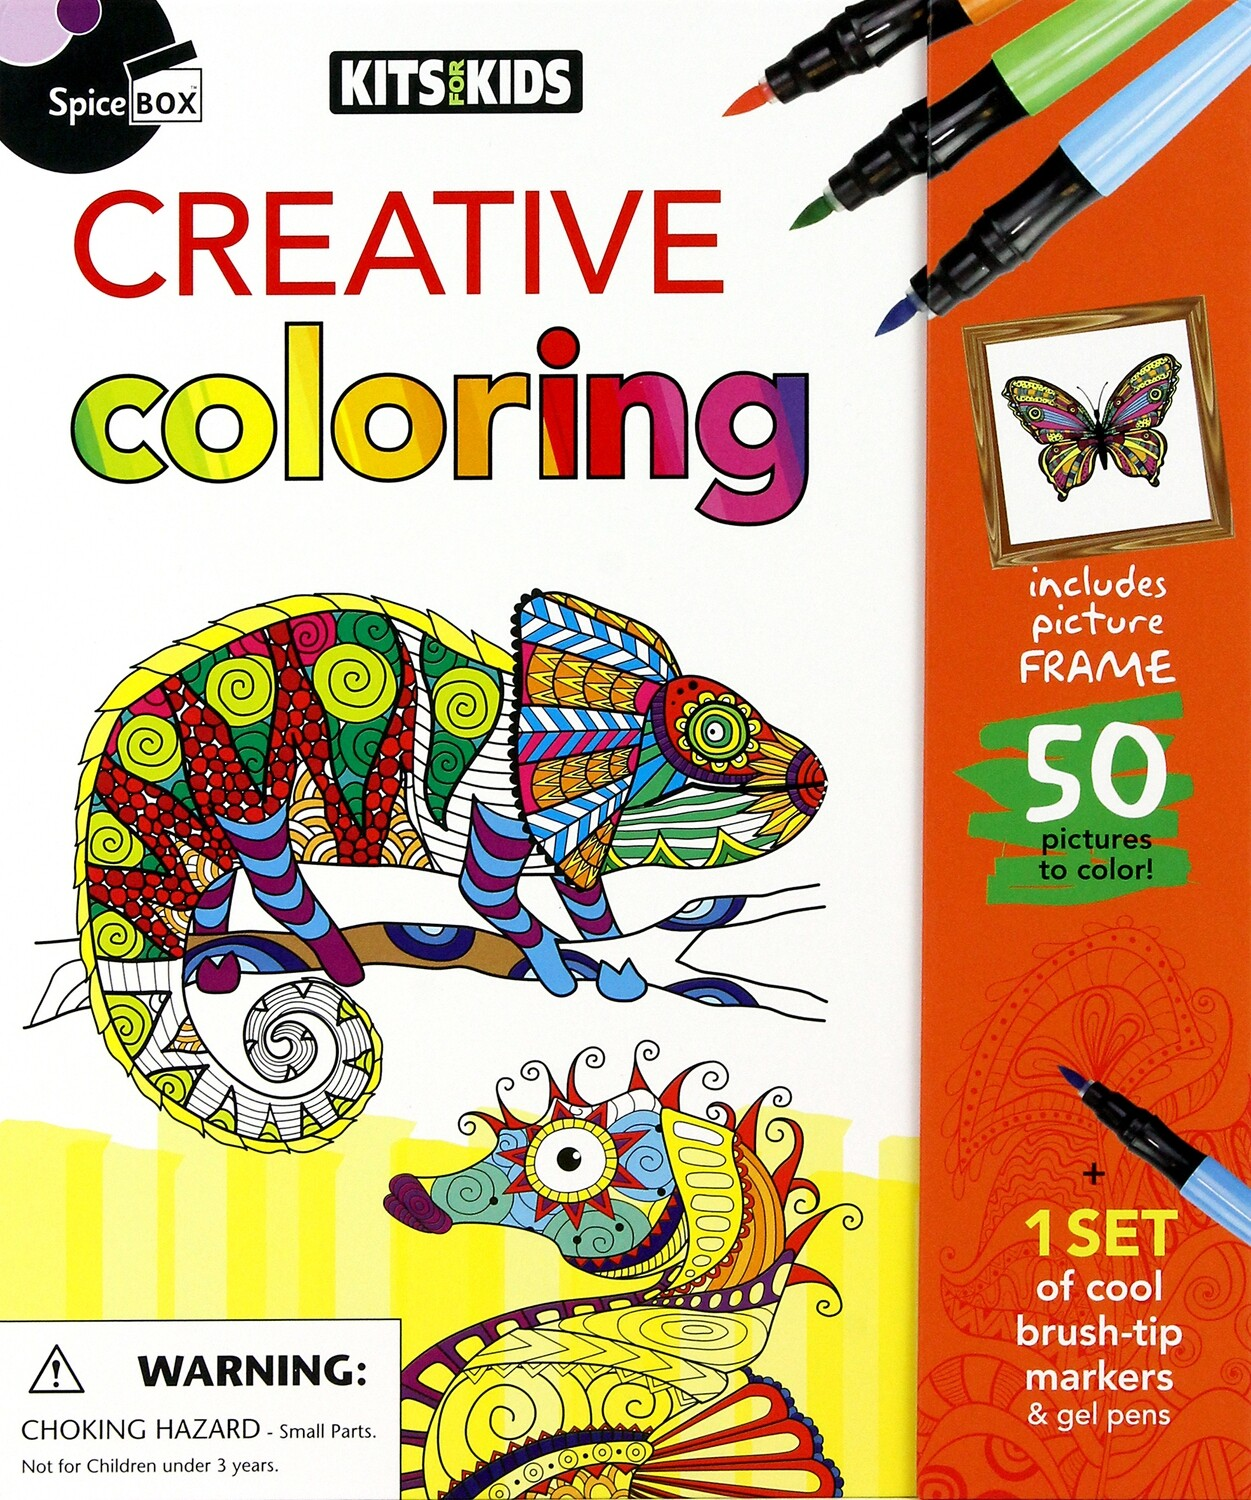 Book Kit: Kits For Kids Creative Colouring